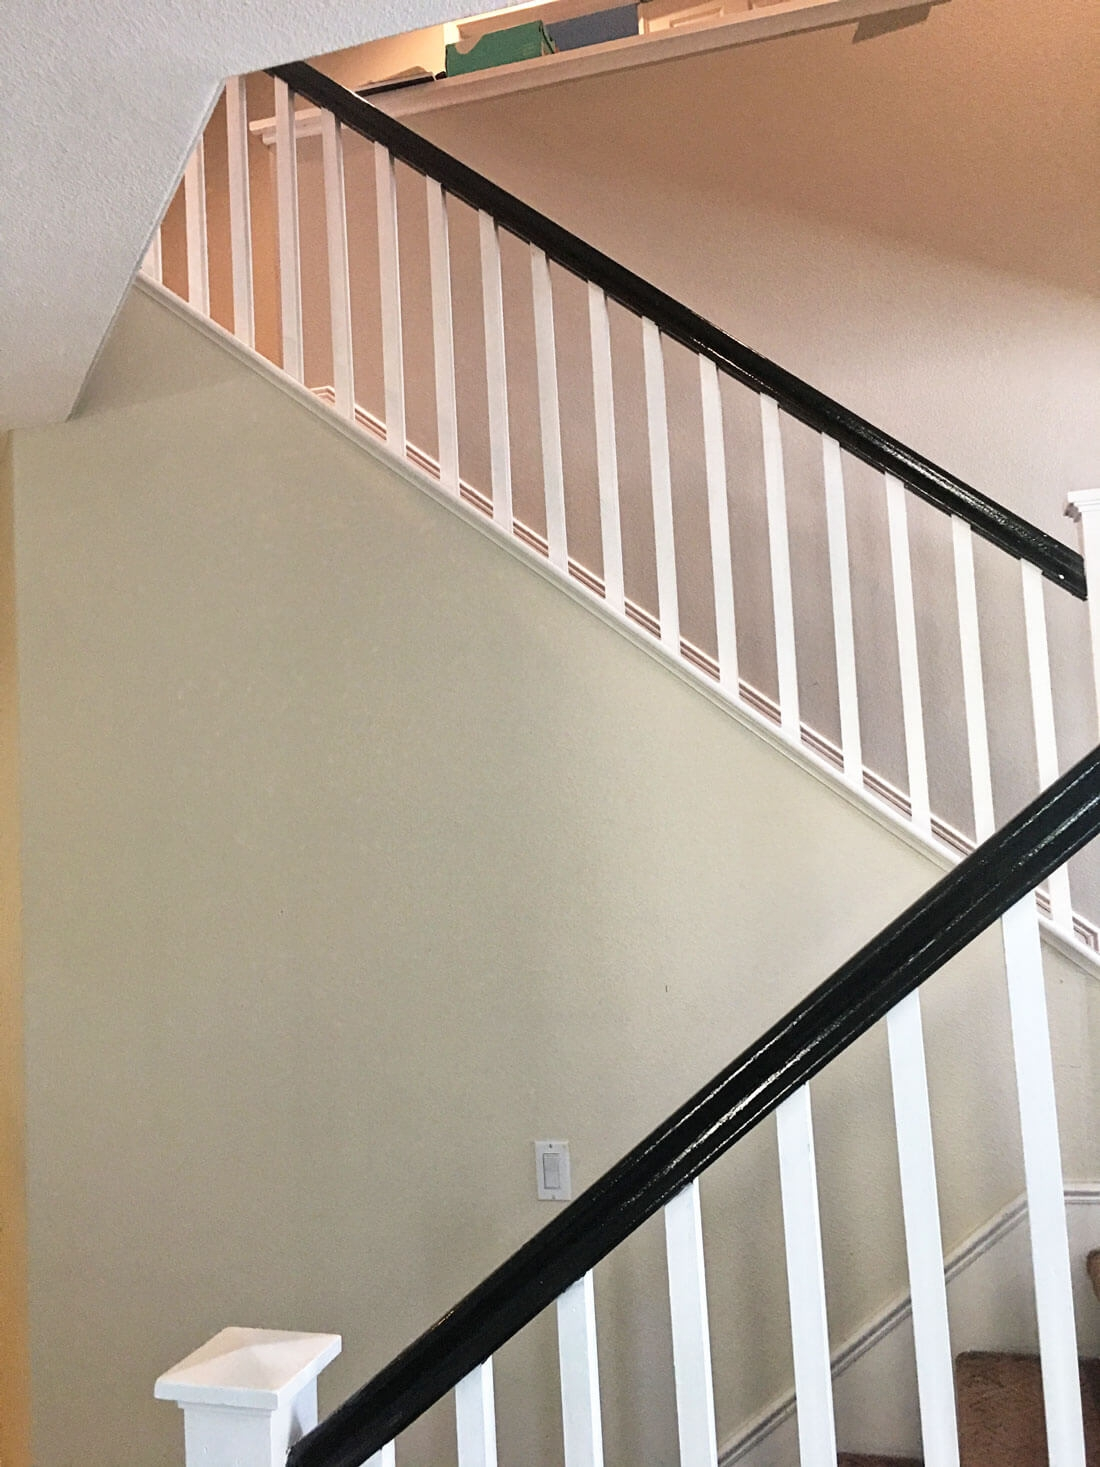 How To Paint Your Stair Railing And Banister Black From 30Daysblog | Metal And Wood Interior Railings | Contemporary | Art Craft | Black Glass Interior | Wood Cap | Metal Exterior Brown